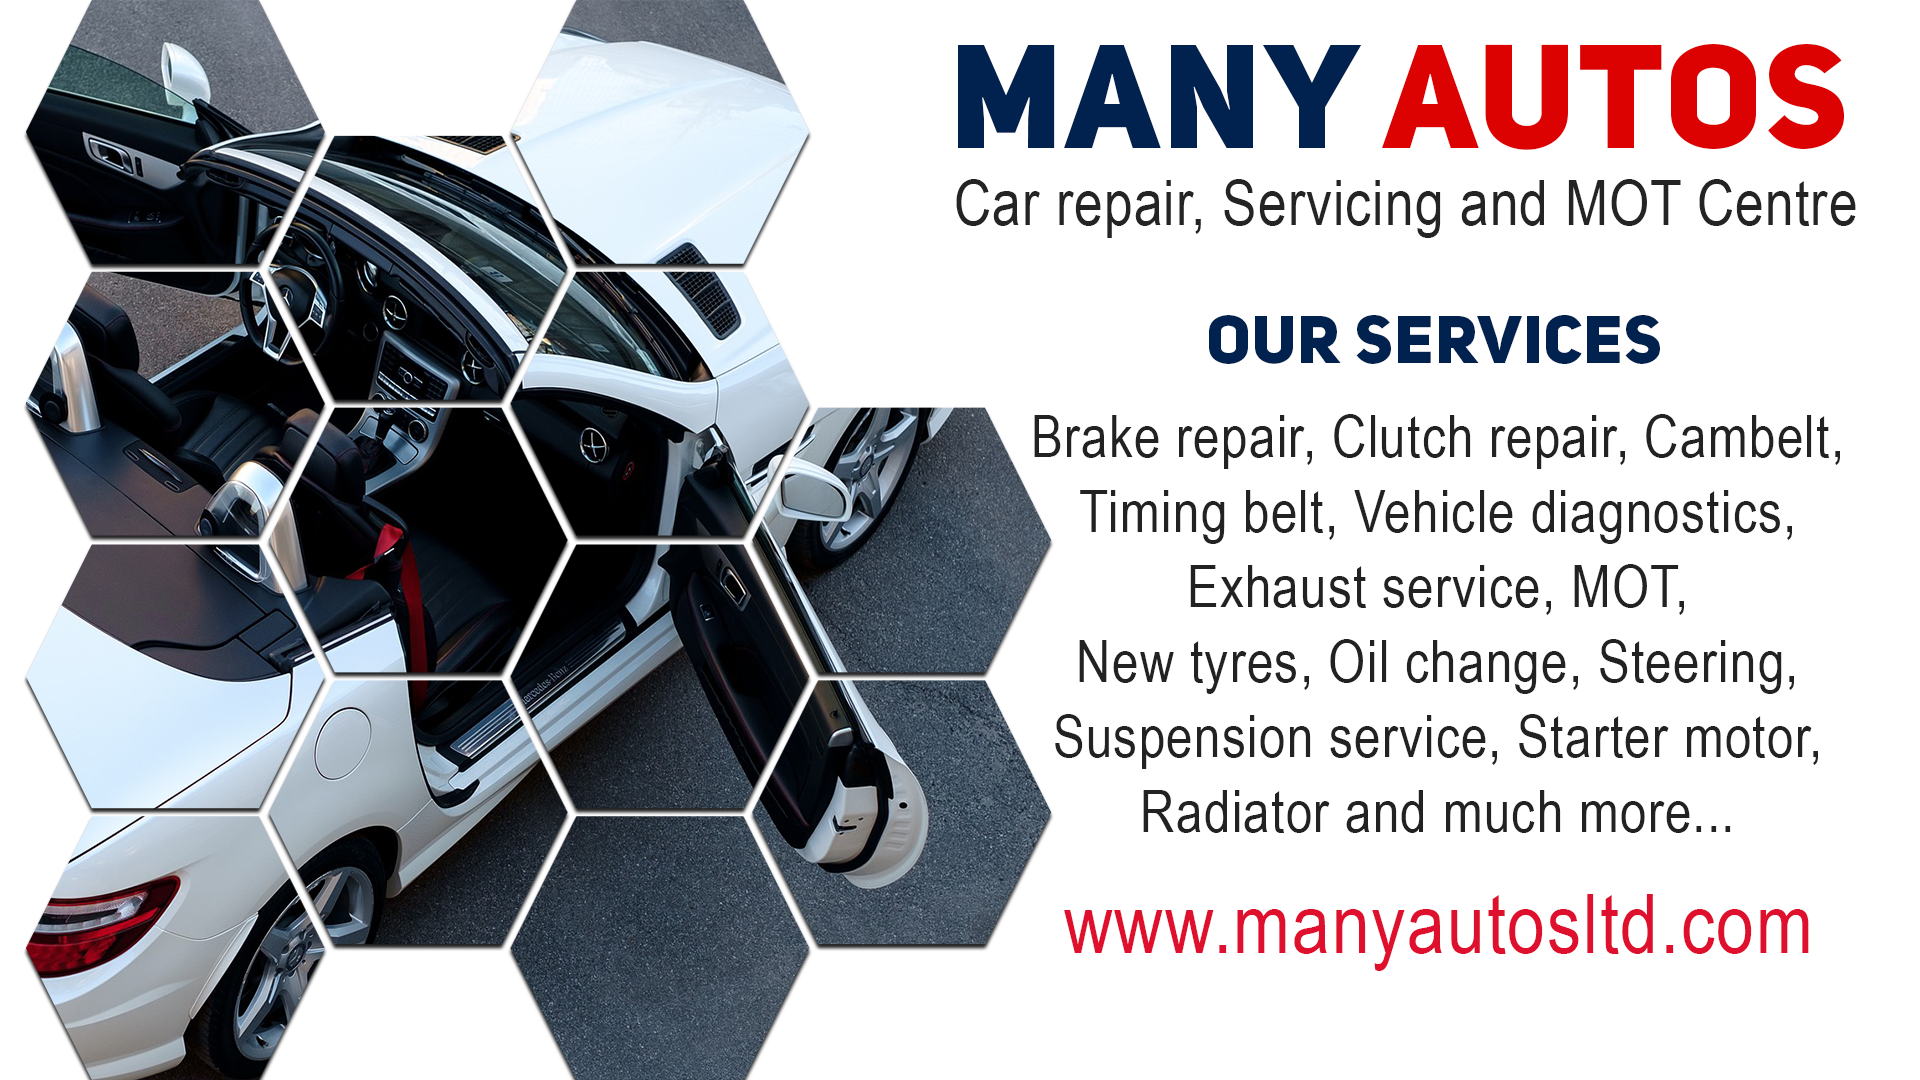 Whether you need a service, repair or an MOT, our highly